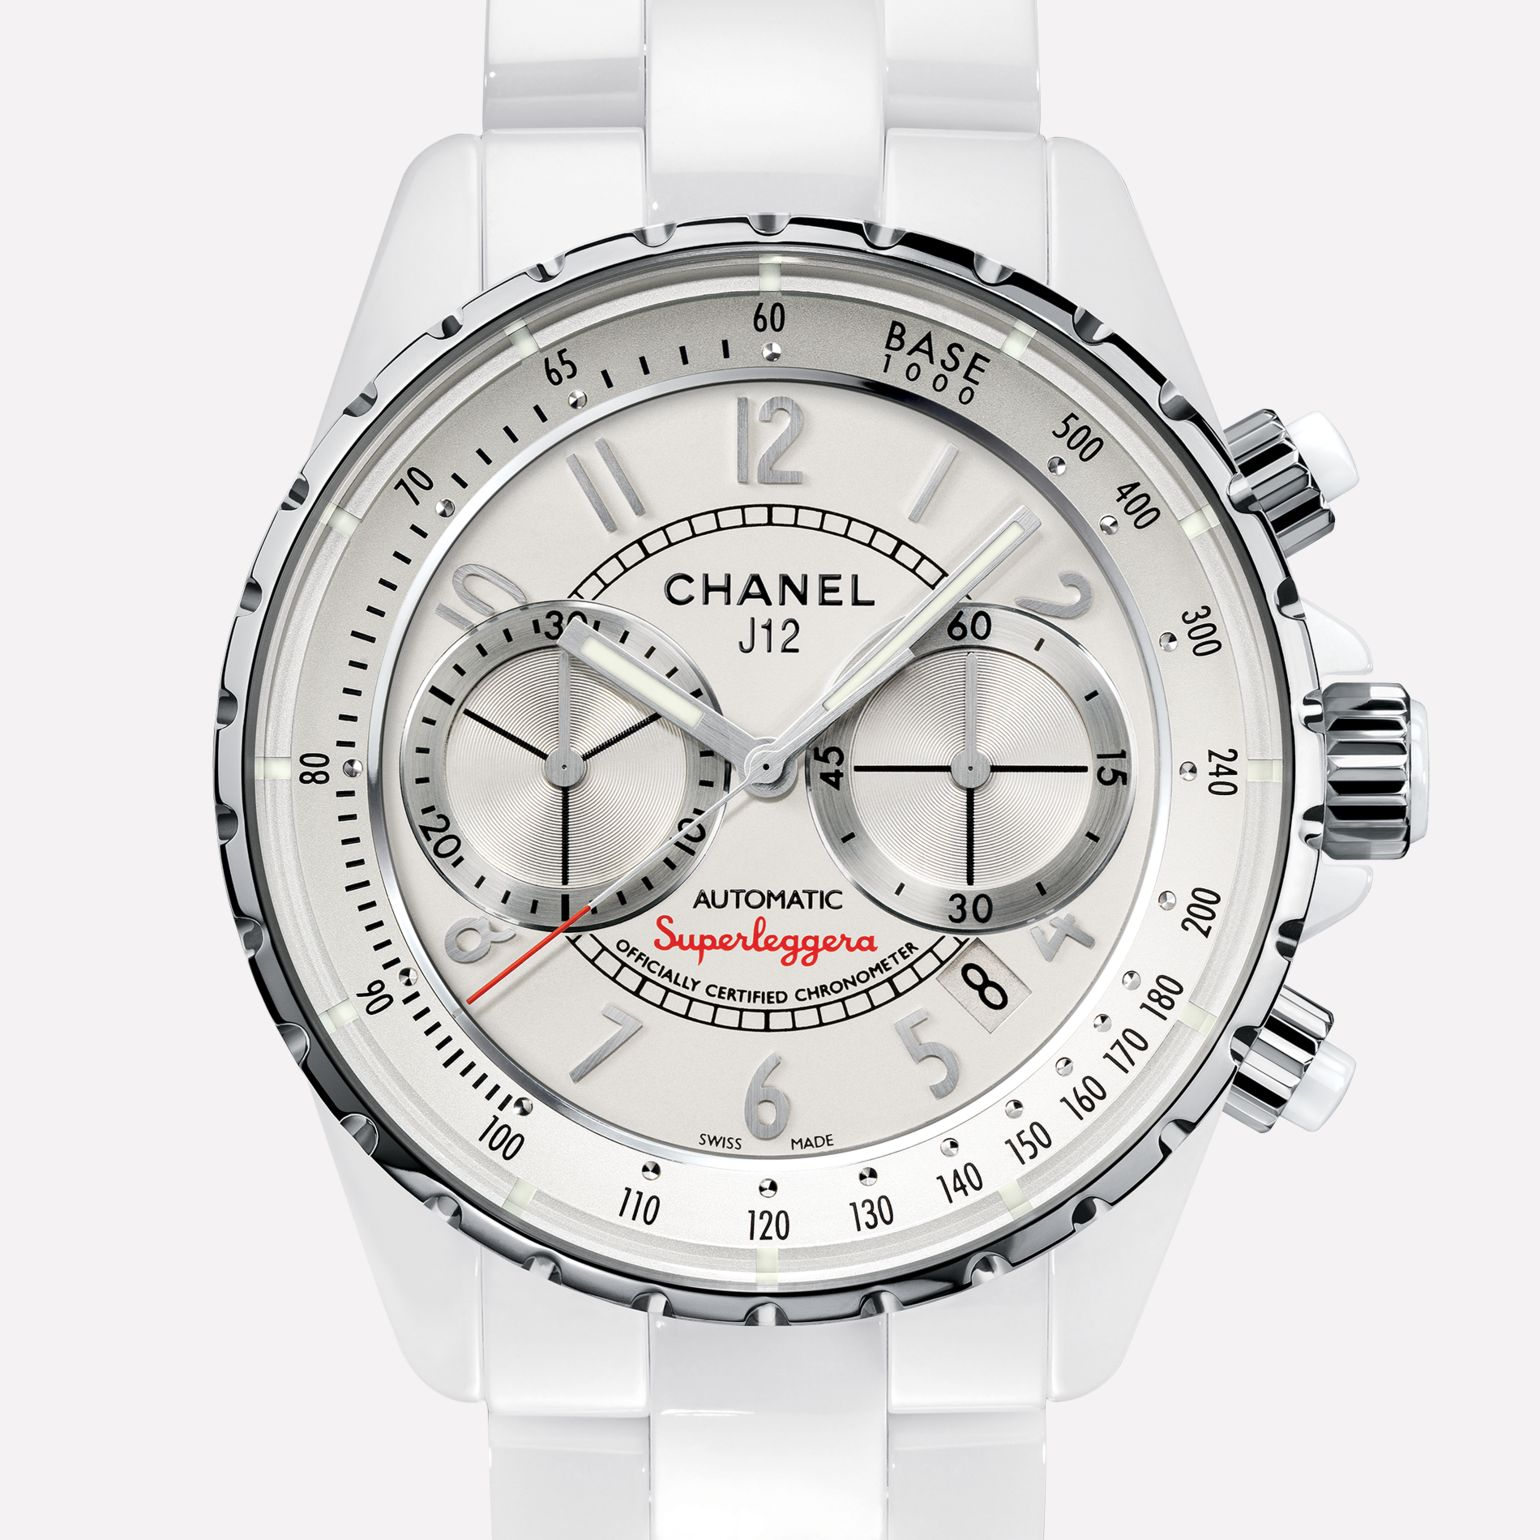 J12 CHRONOGRAPHE SUPERLEGGERA Watch White ceramic and steel